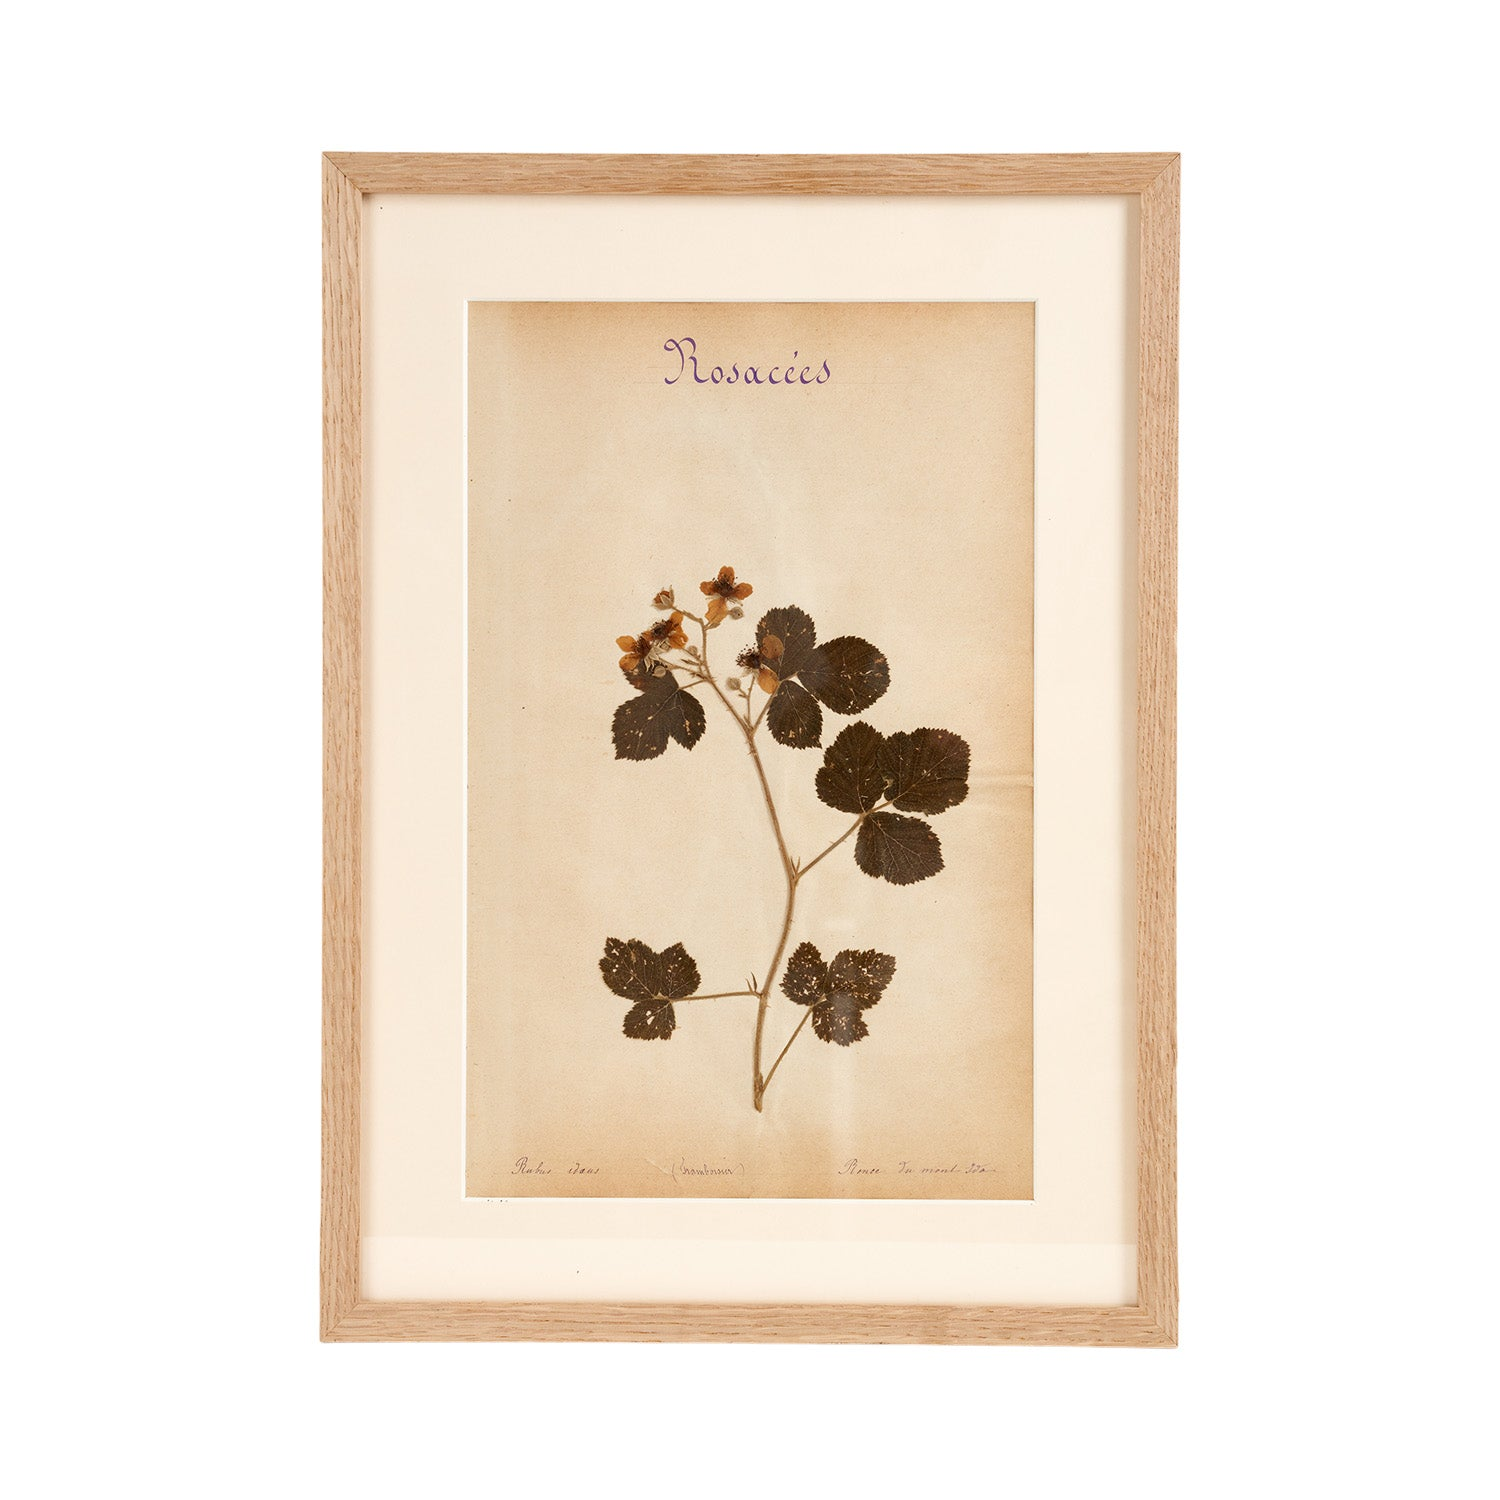 French Herbier Specimen 5